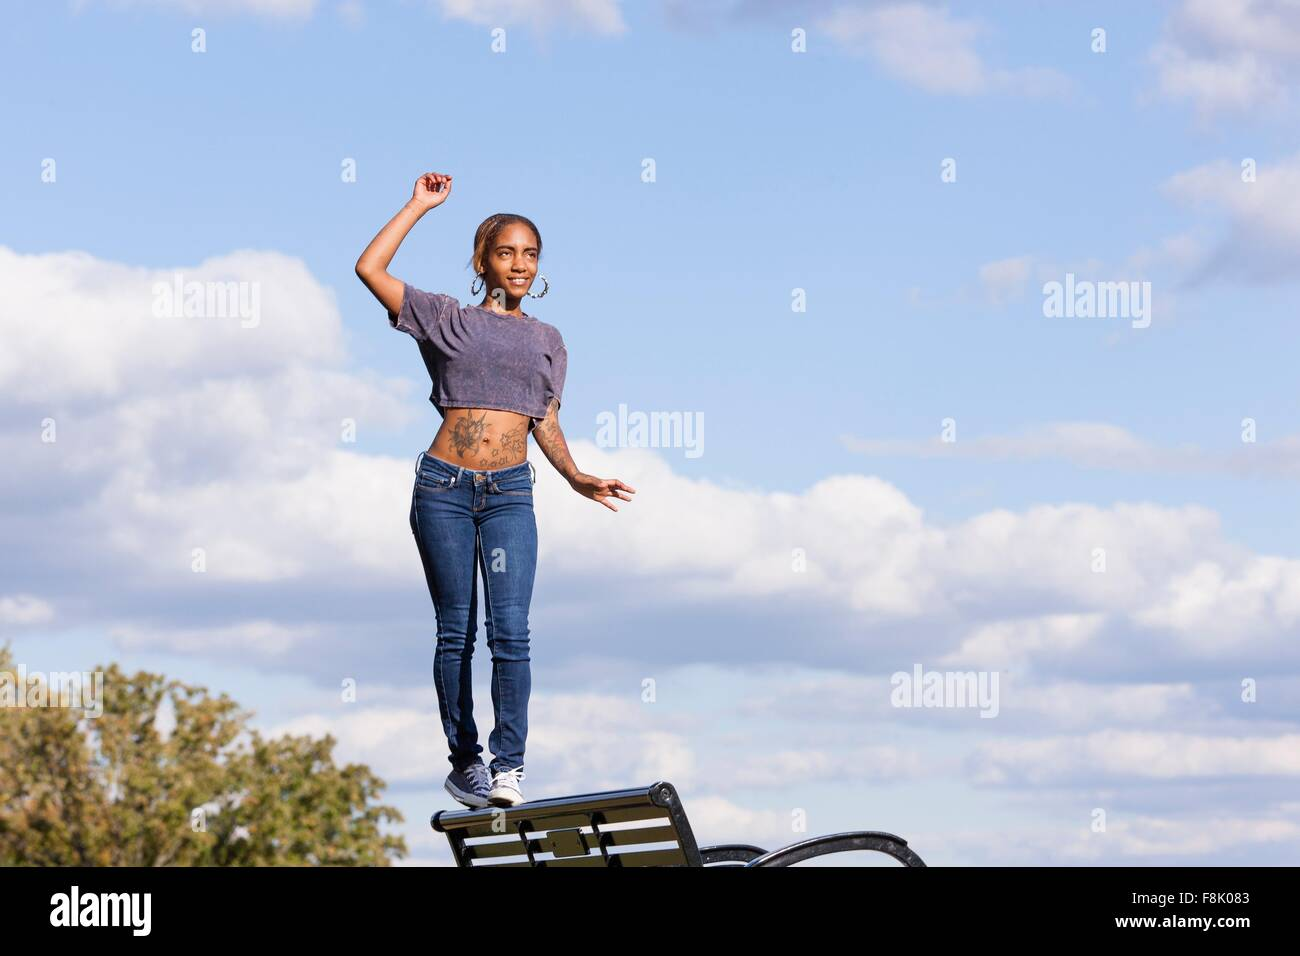 Young woman wearing crop top balancing on back on park bench - Stock Image